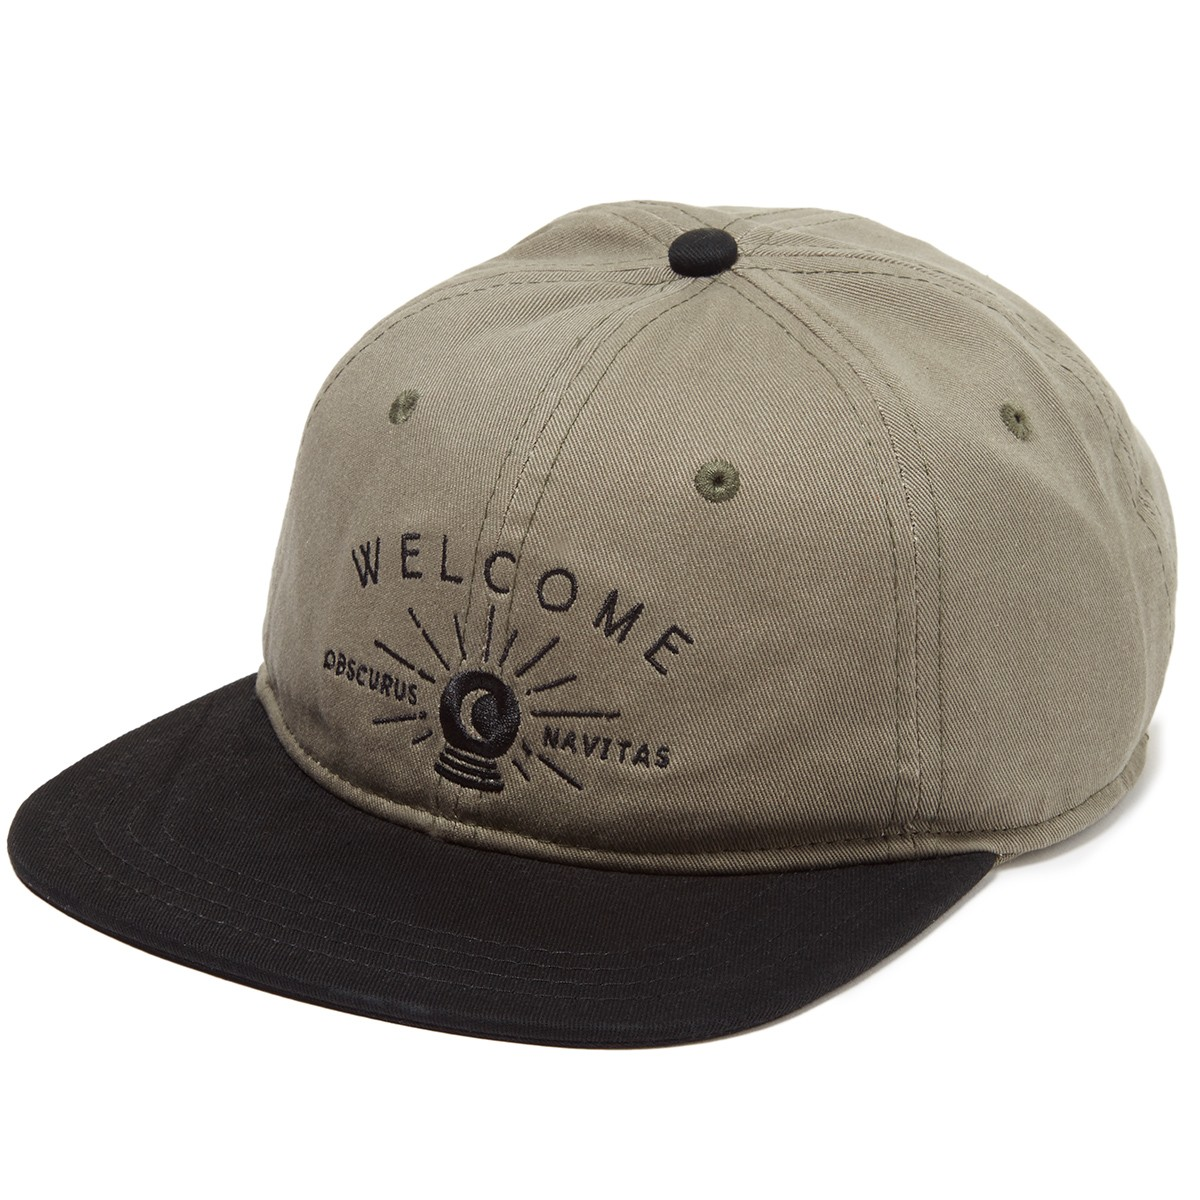 Welcome Dark Energy Unstructured 6-Panel Slider Hat - Olive/Black